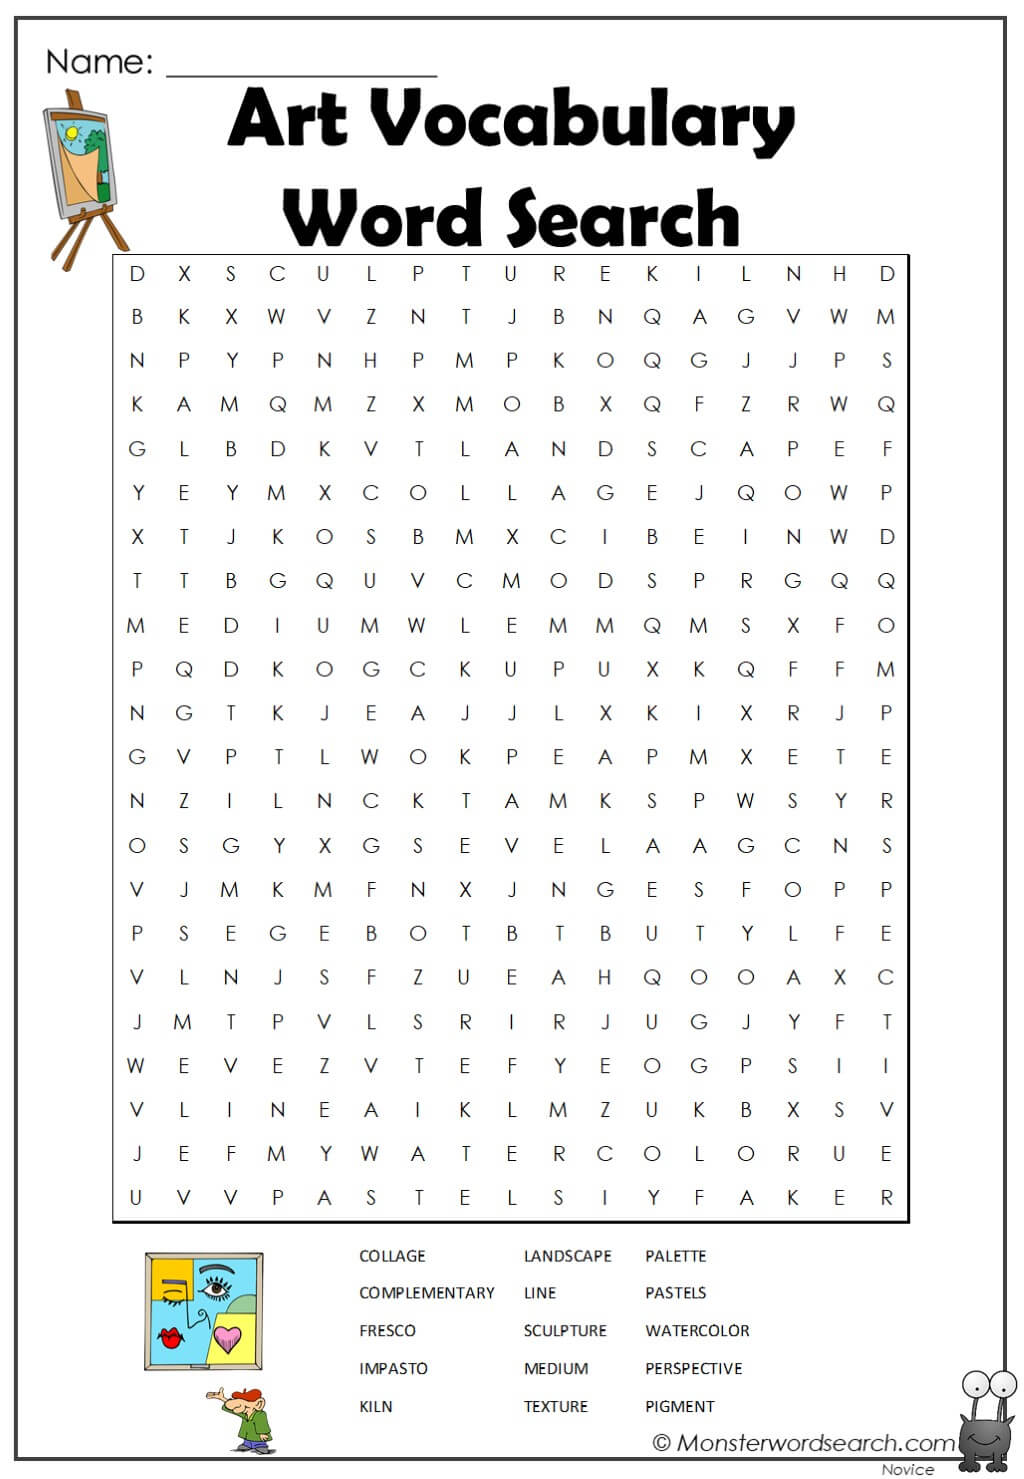 Art Vocabulary Word Search Monster Word Search